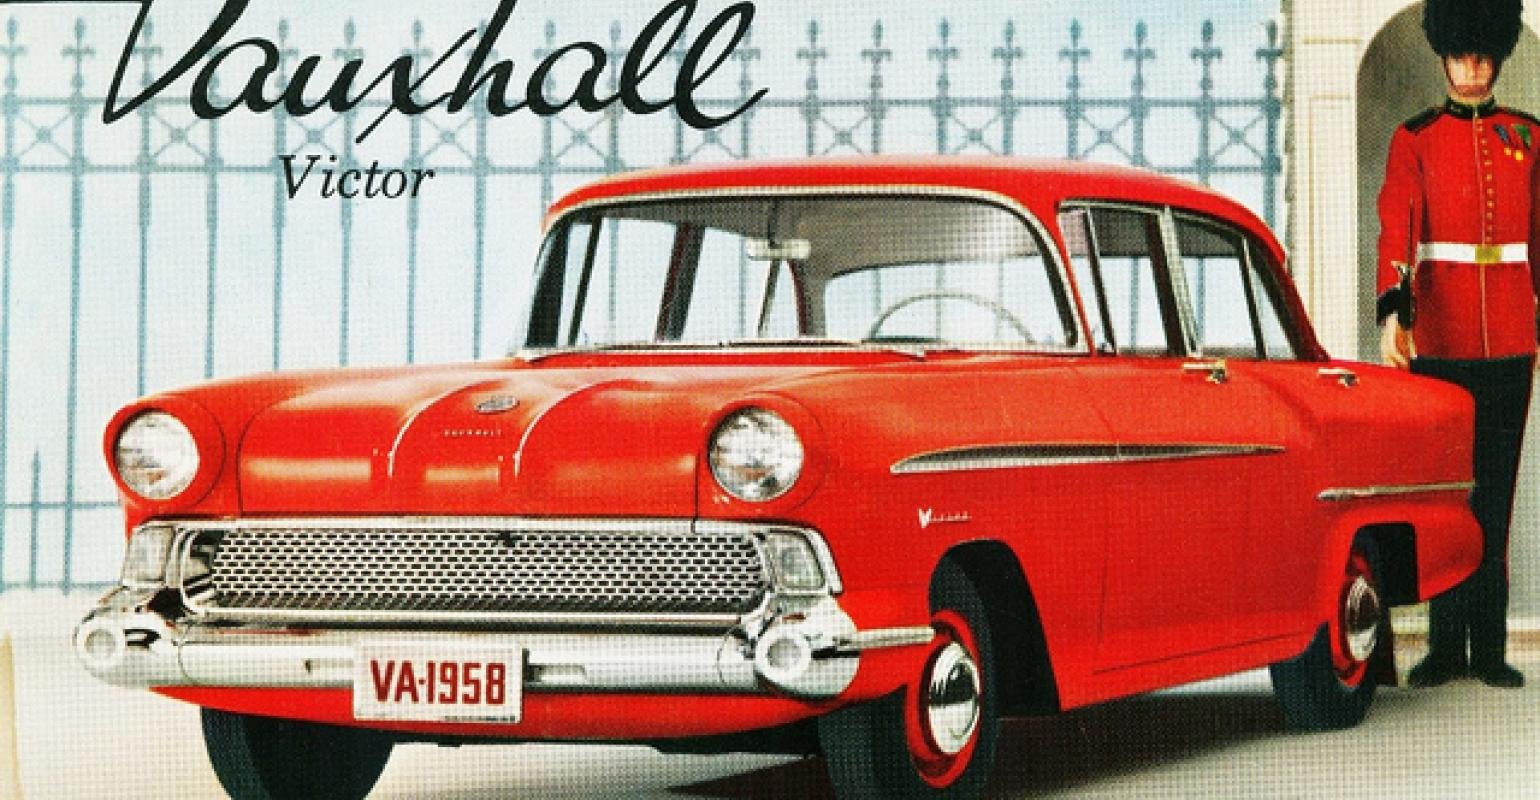 Wiring Diagram As Well Wiring Diagram For A 1958 Ford Edsel On 1968